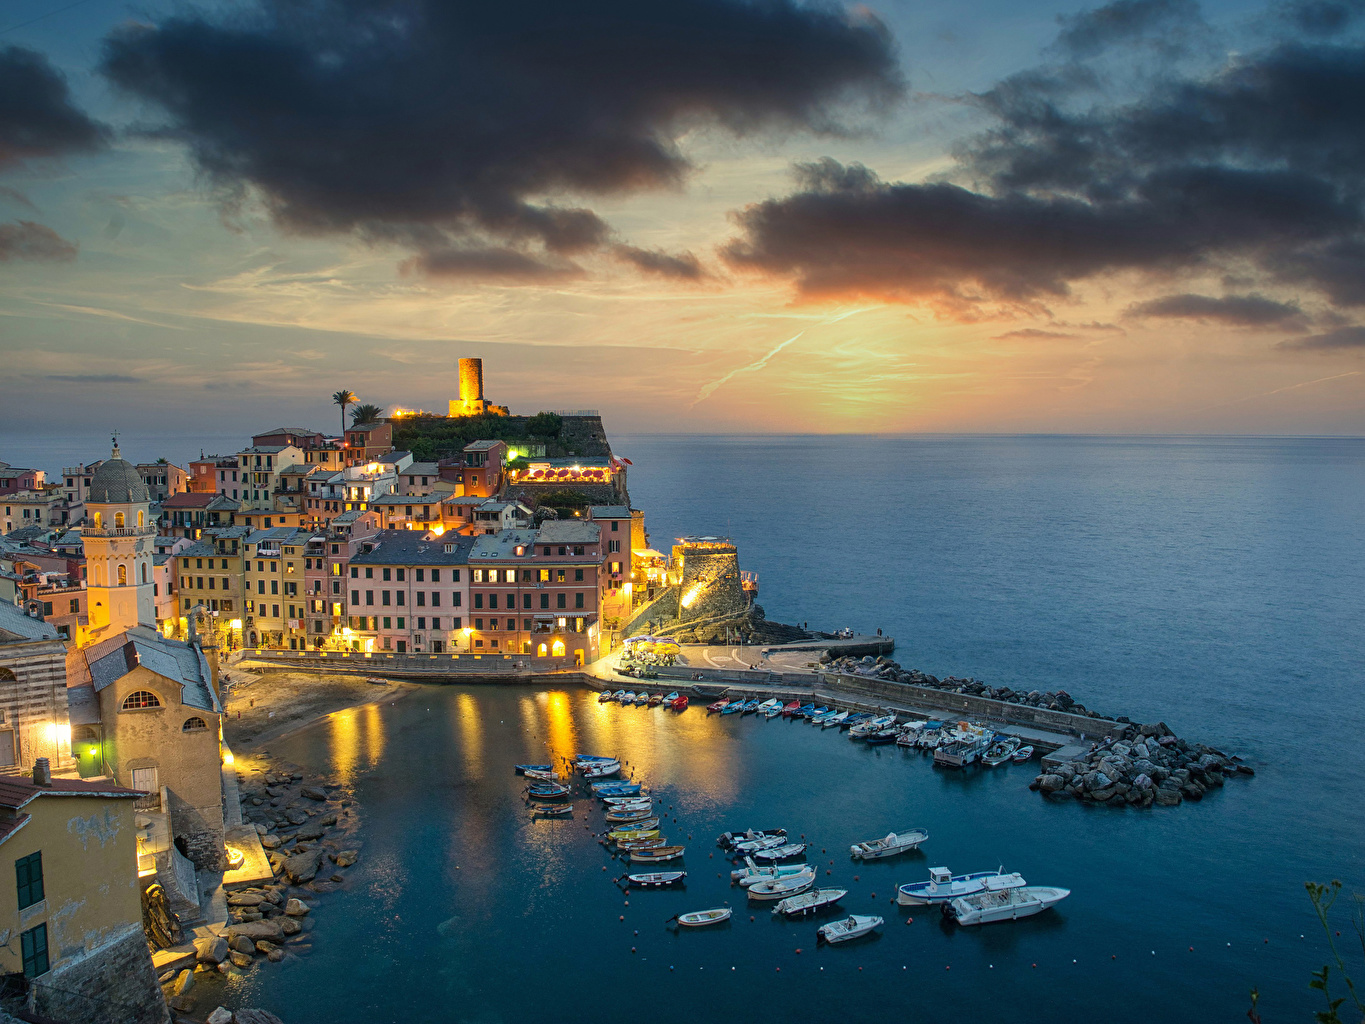 Desktop Wallpapers Vernazza Italy Riverboat Bay Berth Evening Cities Building Pier Marinas Houses